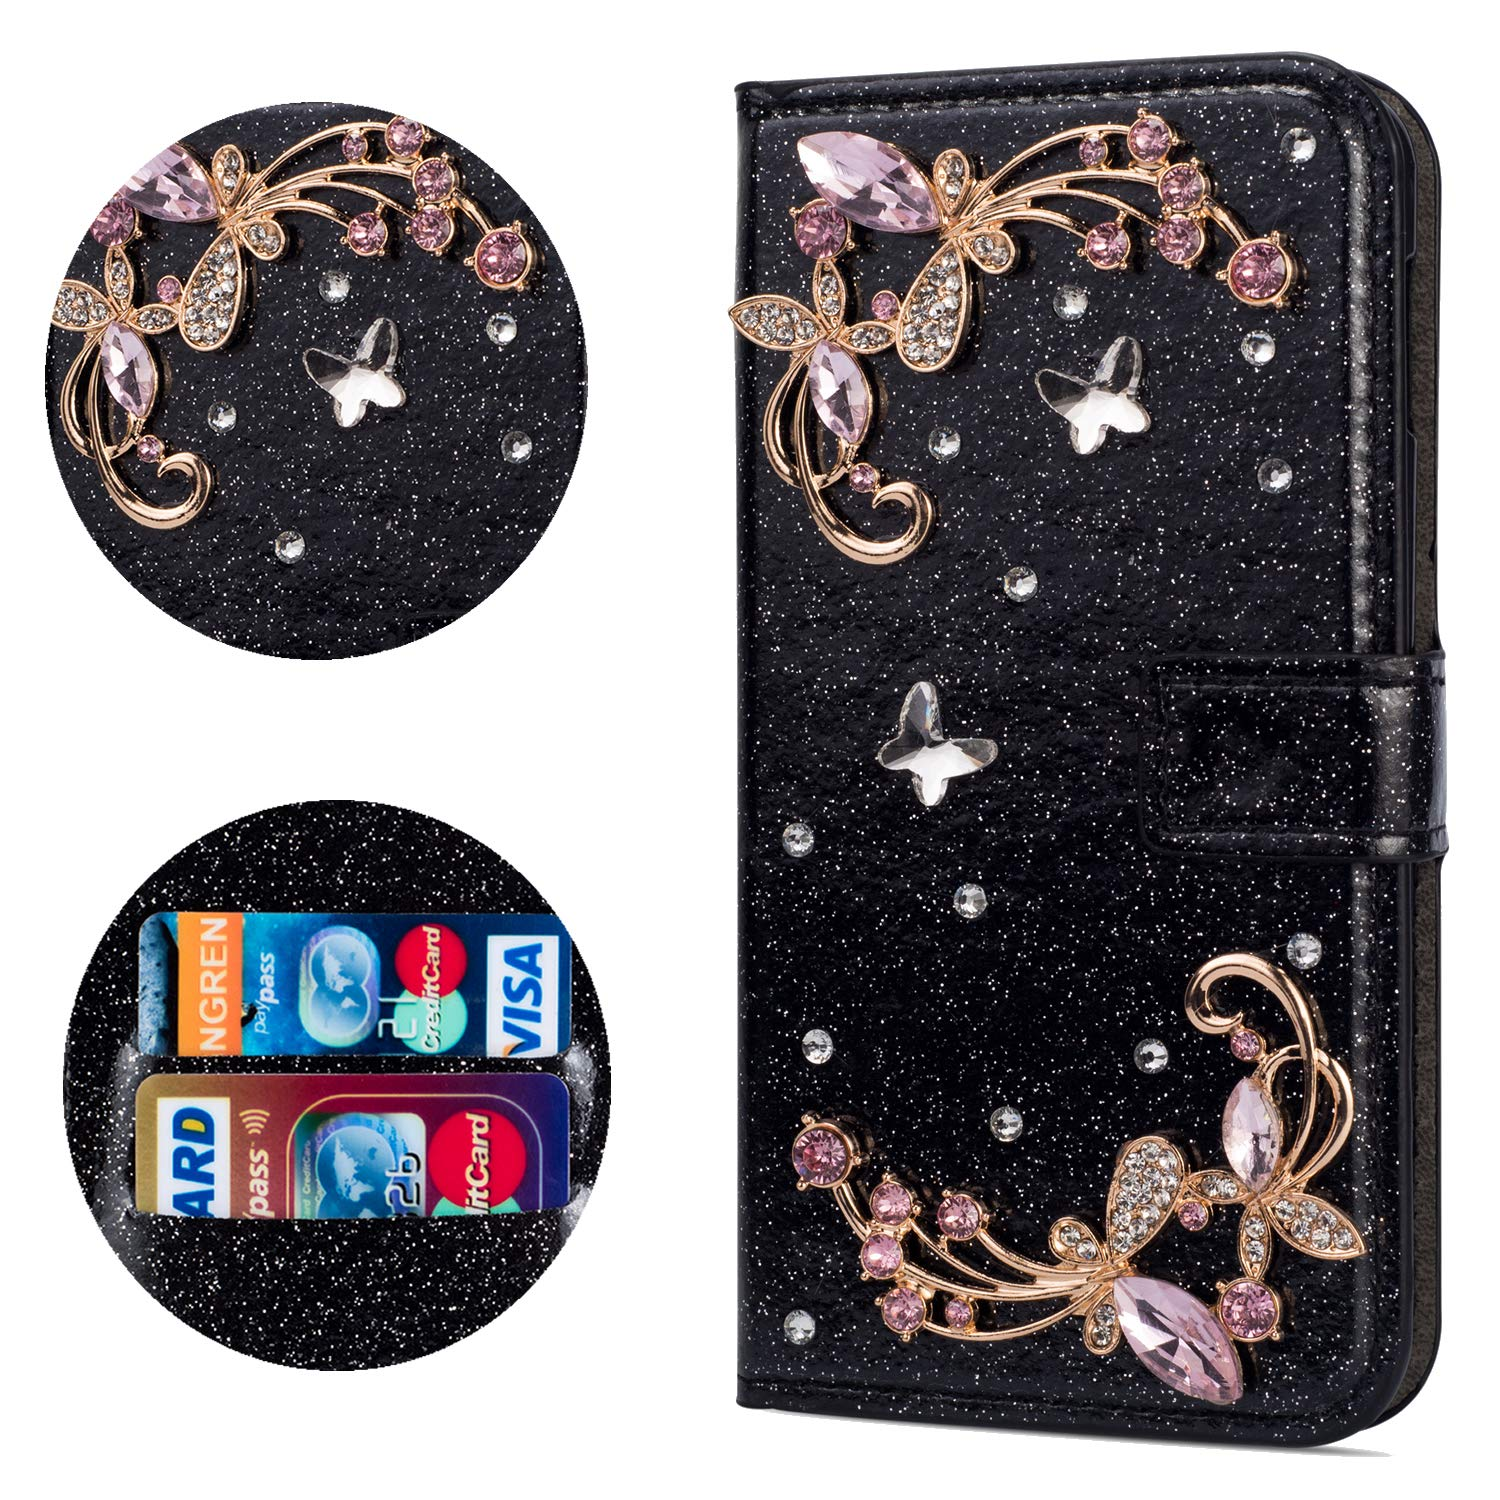 Stysen Flip Case for Huawei Mate 20 Pro,Leather Cover with 3D Handmade Crystal Diamonds Butterfly Glitter Floral Wallet Magnetic Clasp for Huawei Mate 20 Pro by Stysen